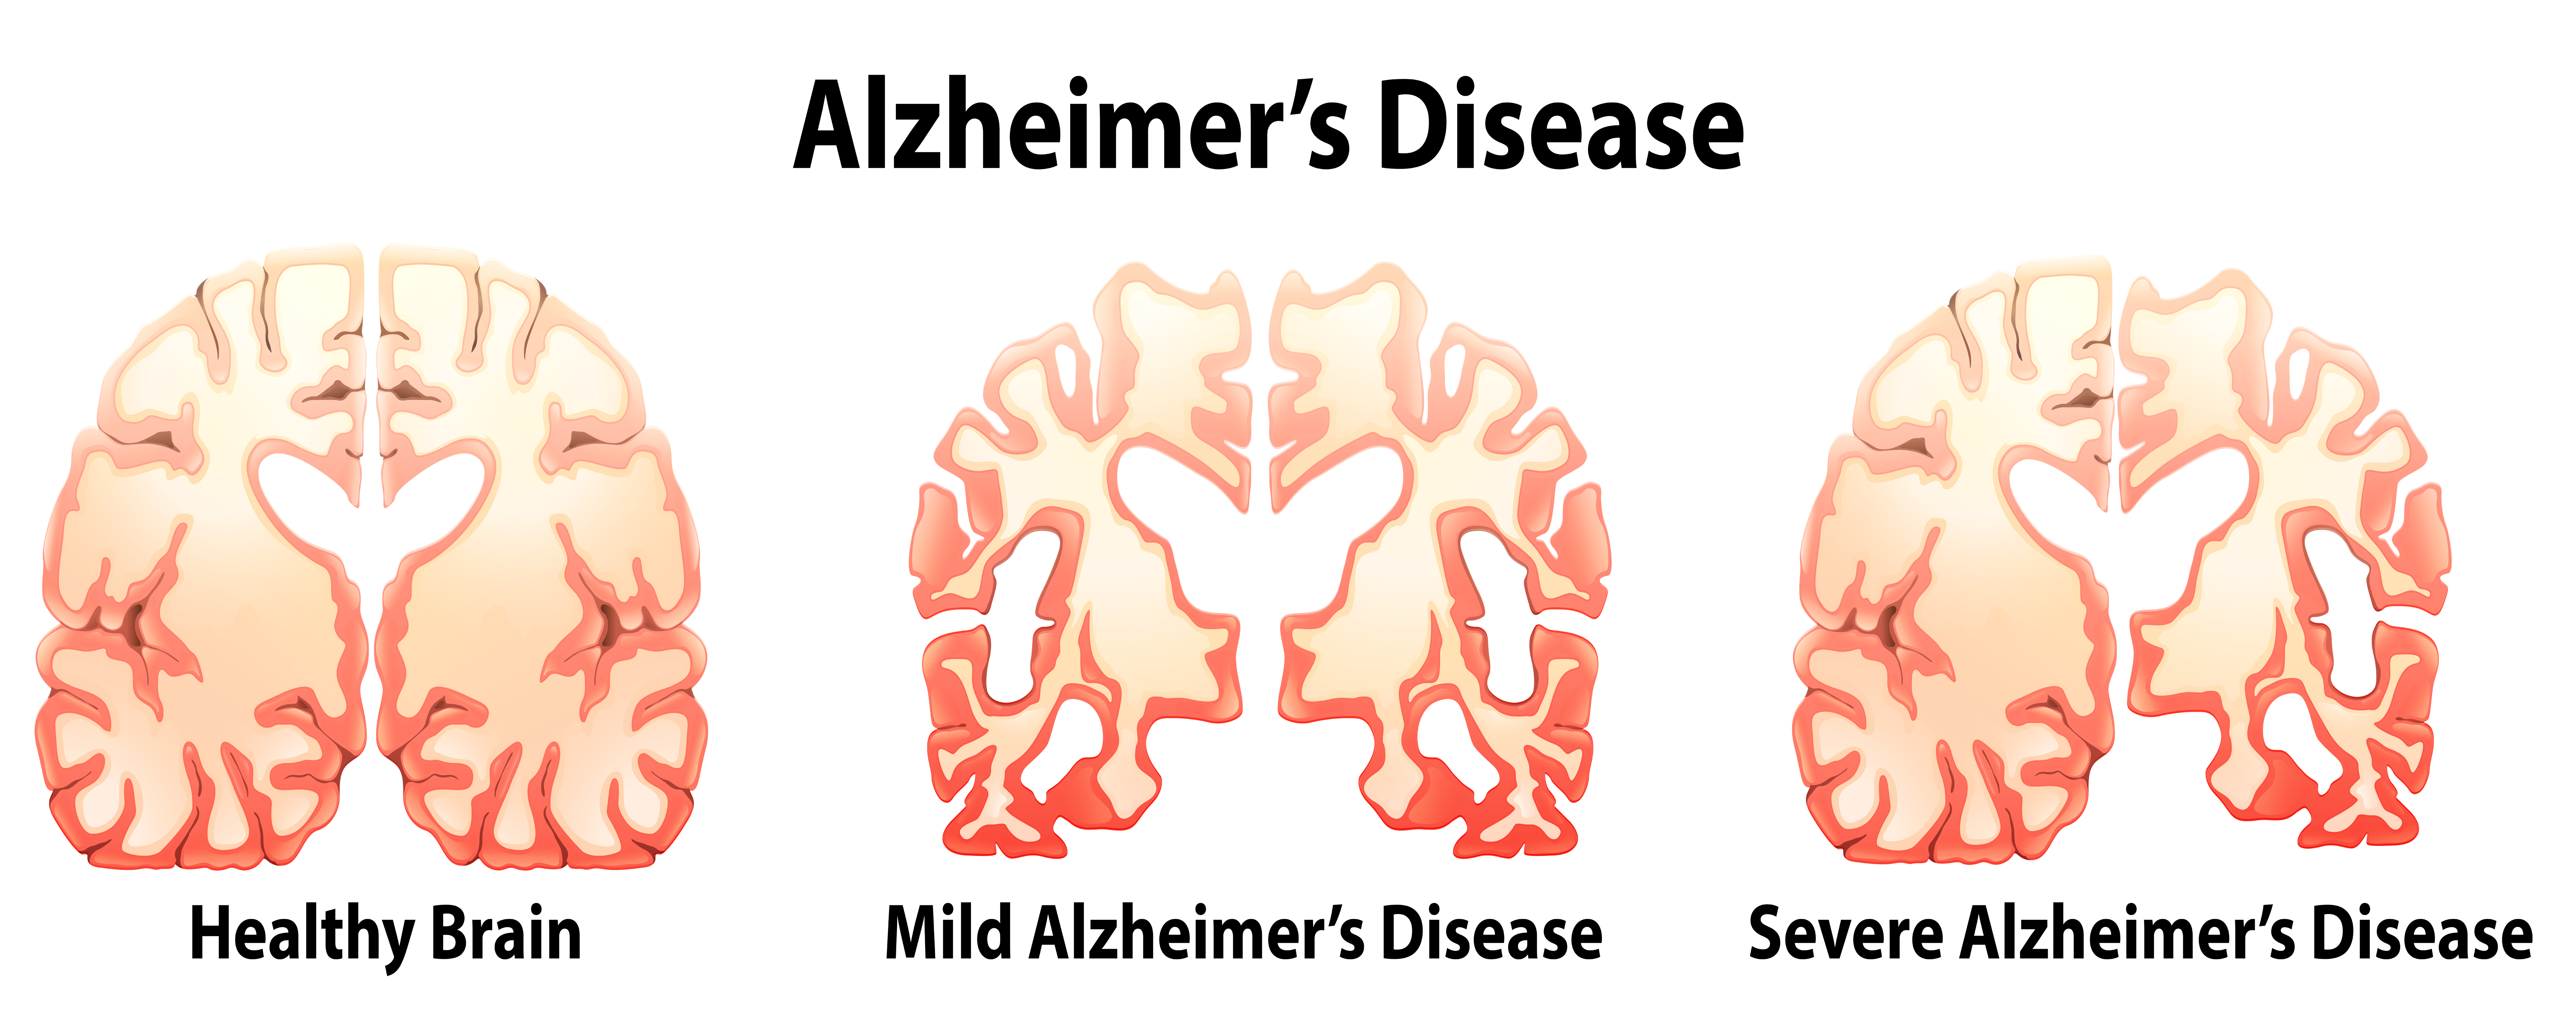 alzheimer s dementia and especially hard time Agraphia refers to difficulties  it is hard for people who have alzheimer's disease  remember that people with dementia may have a hard time understanding.